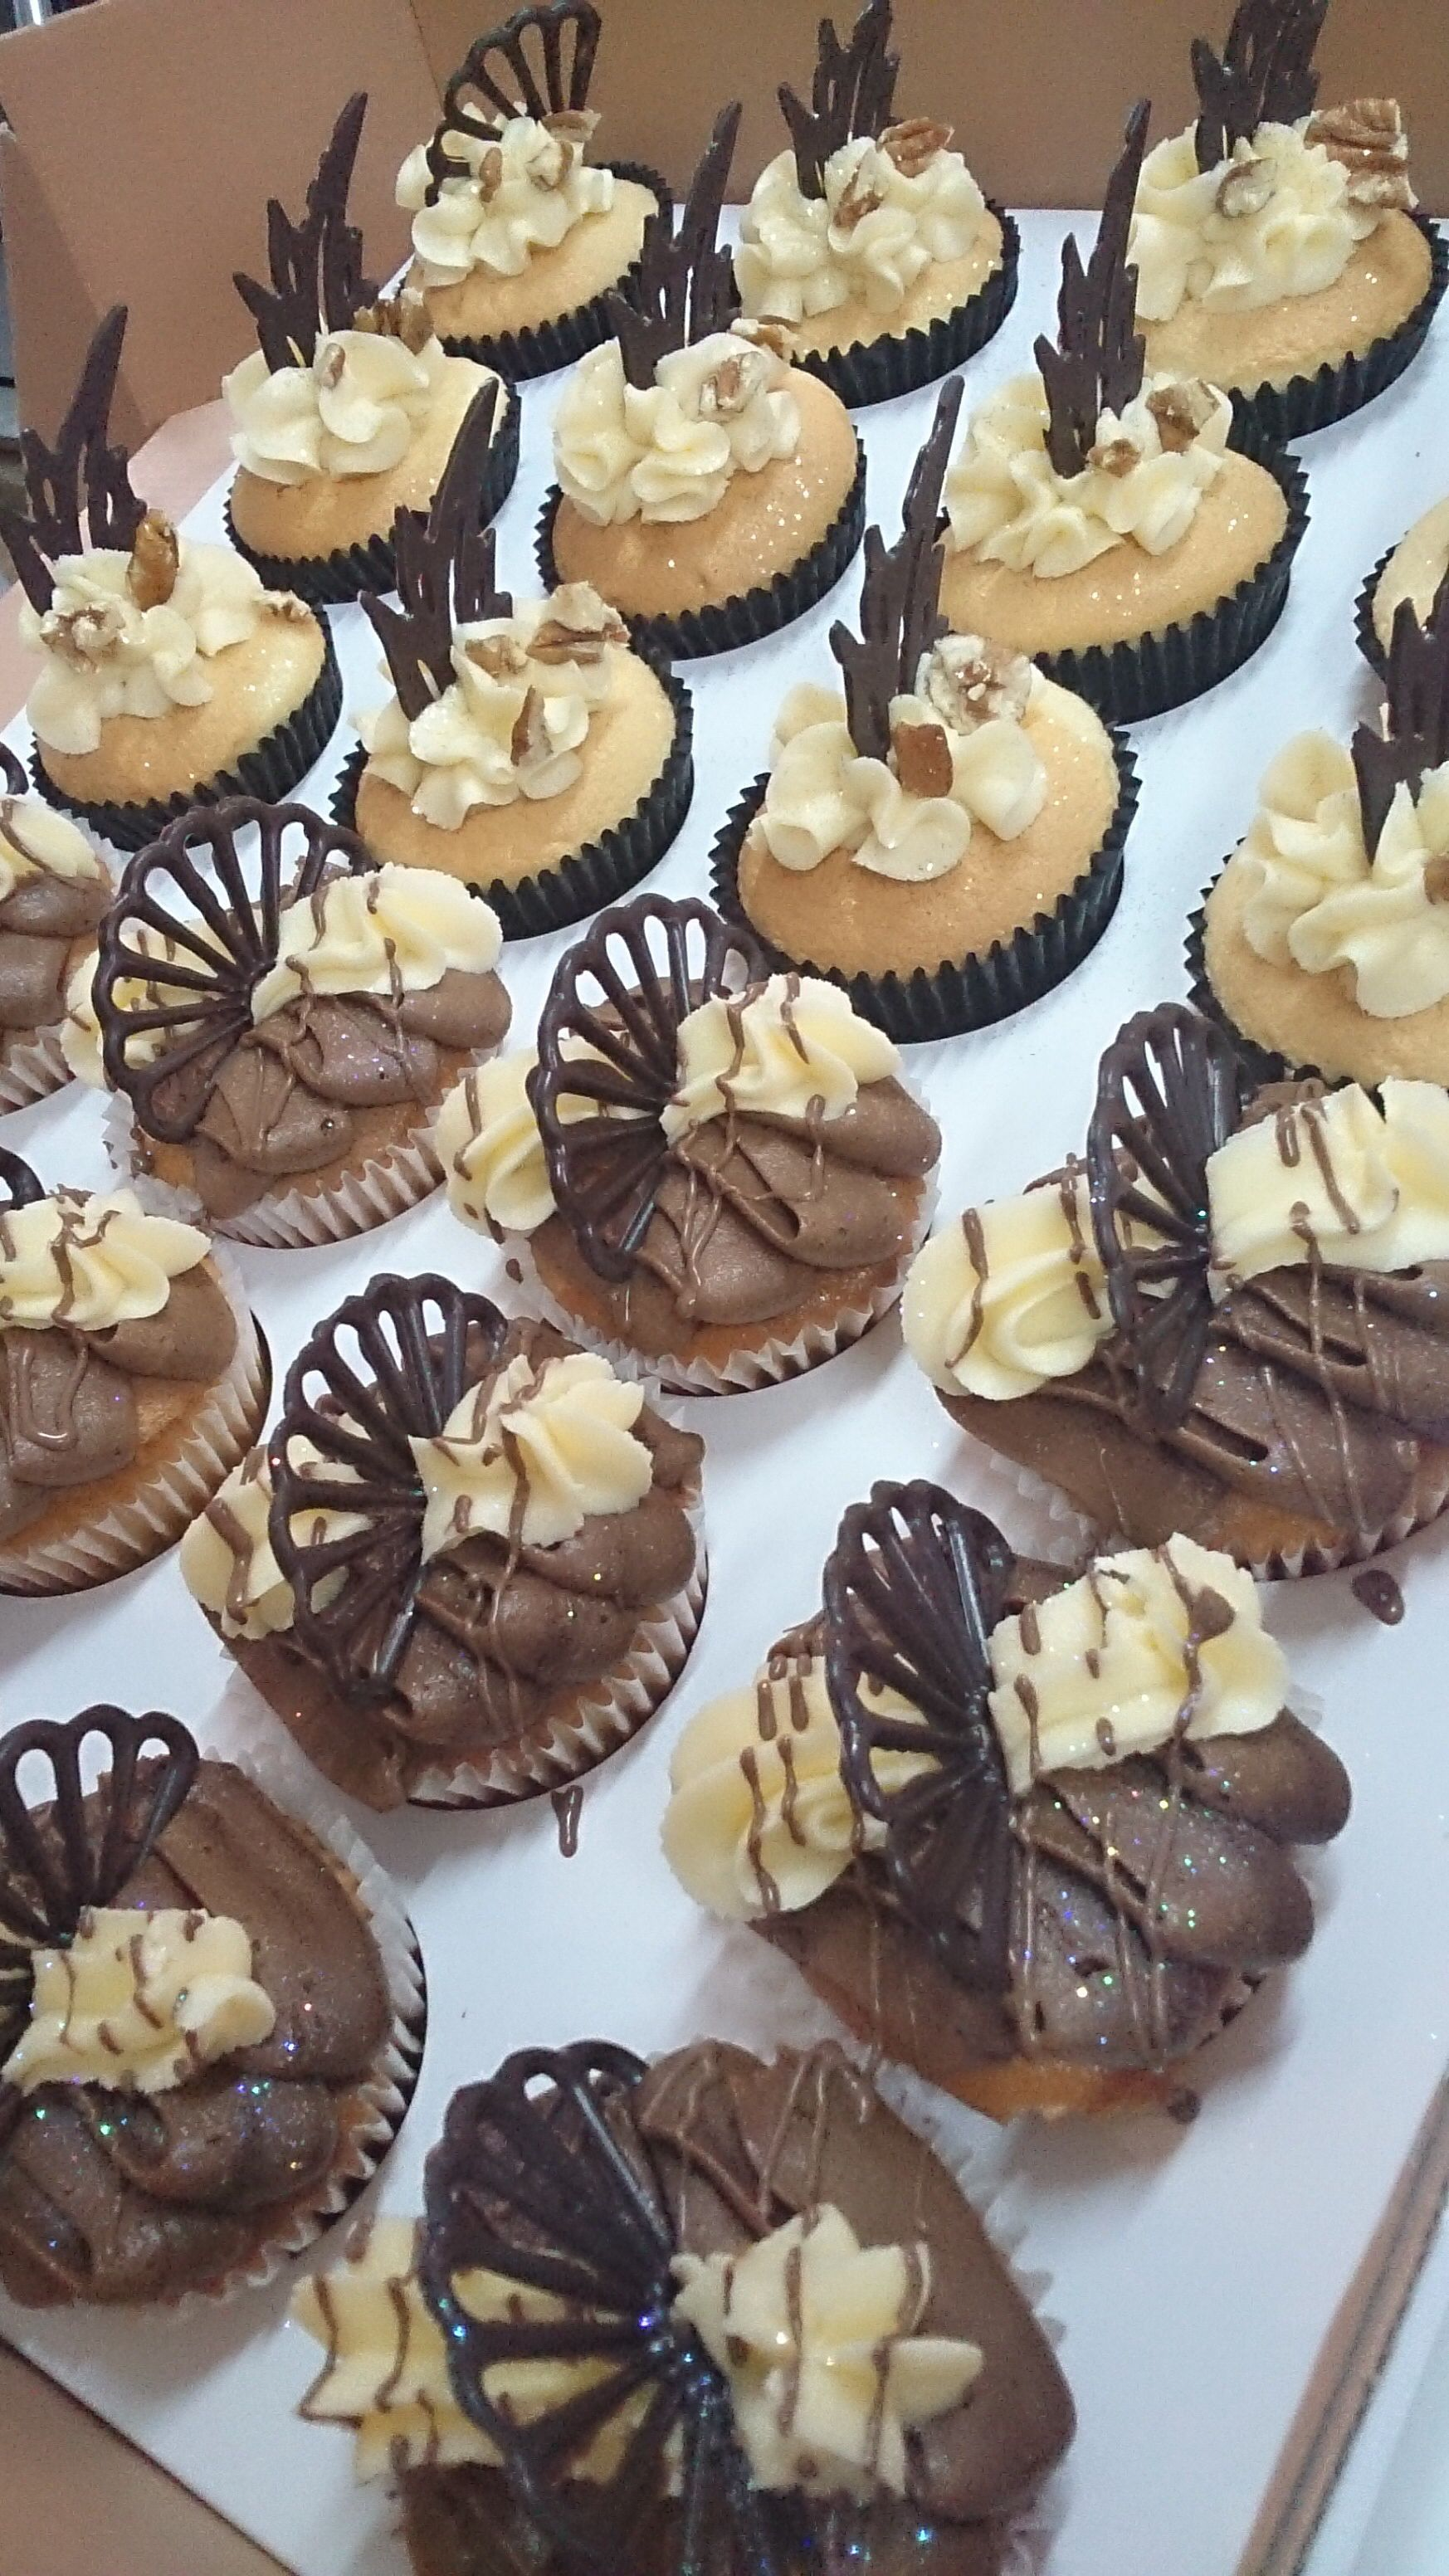 Delicious cupcakes yummy cupcakes decadent cakes small